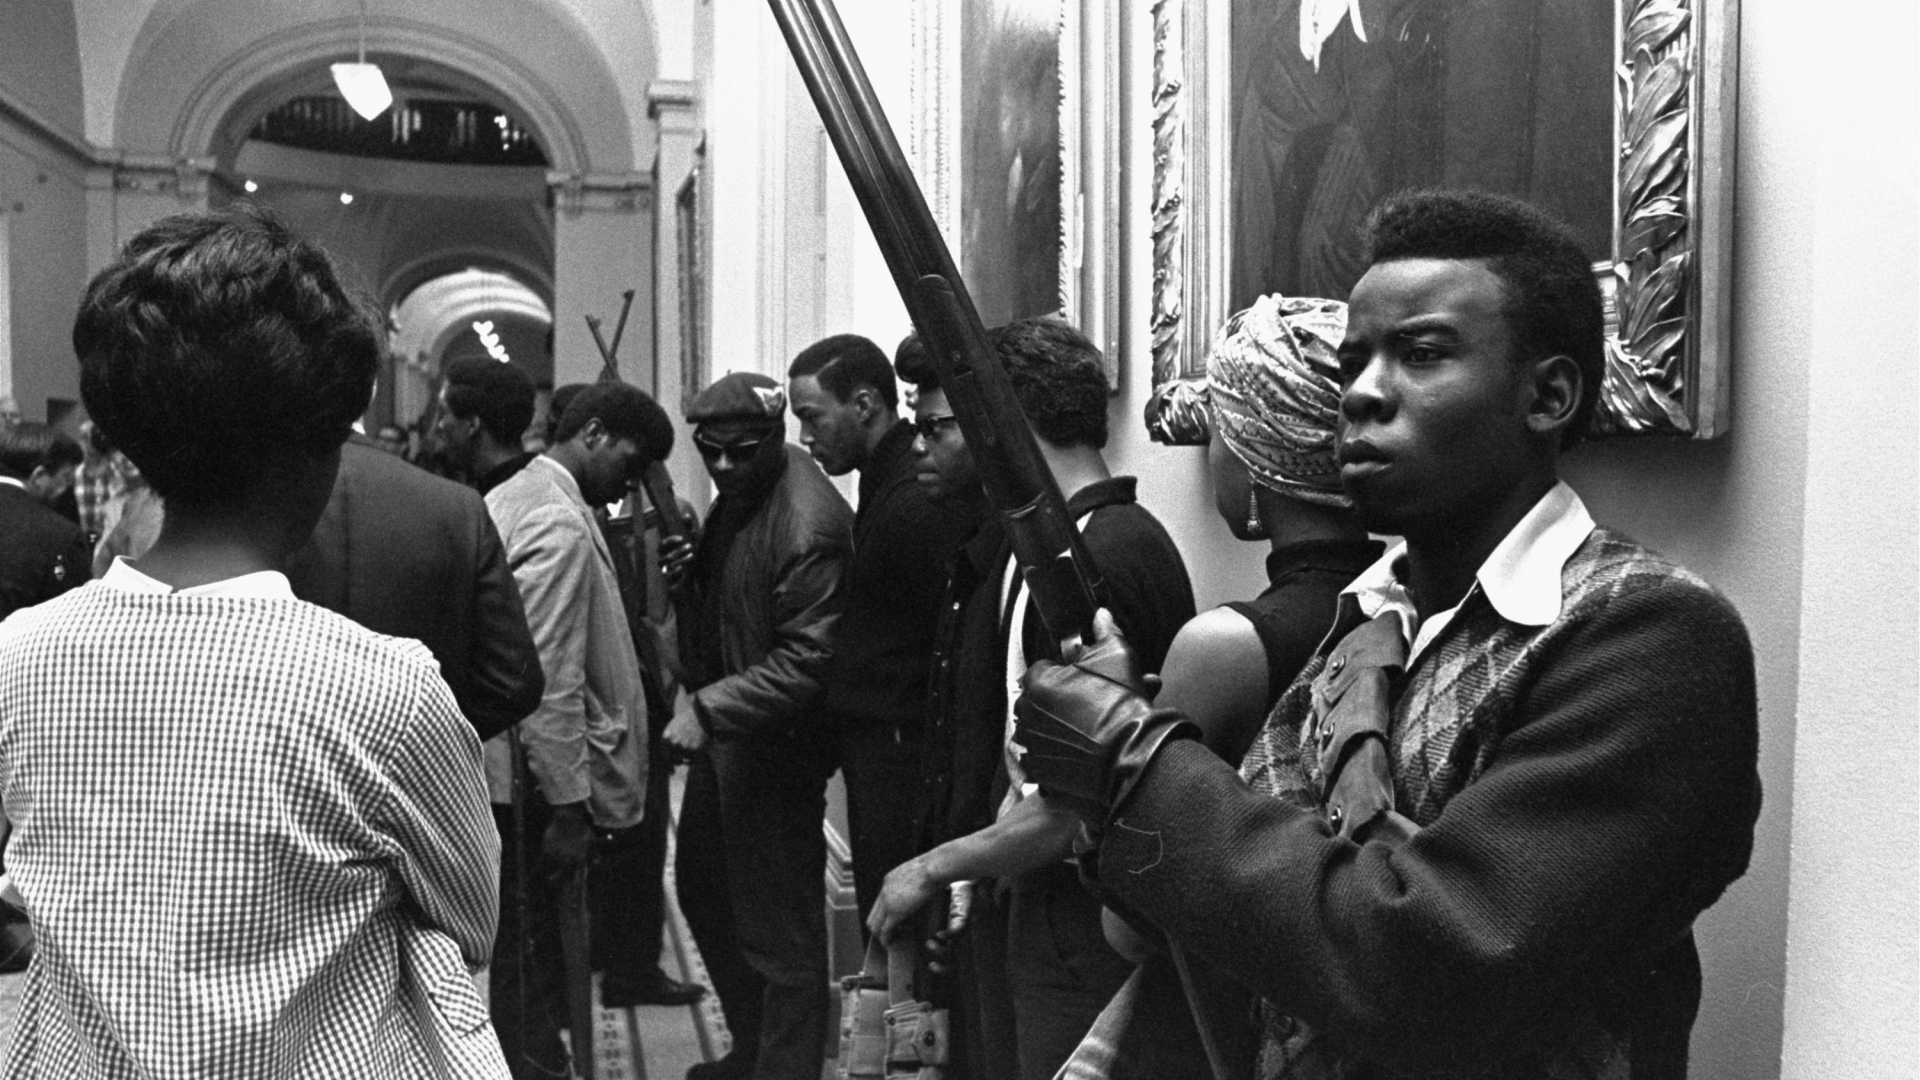 Armed members of the Black Panther Party standing in the corridor of the Capitol in Sacramento protesting a bill that restricted the carrying of arms in public, 1967. (Credit: Walt Zeboski/AP Photo)